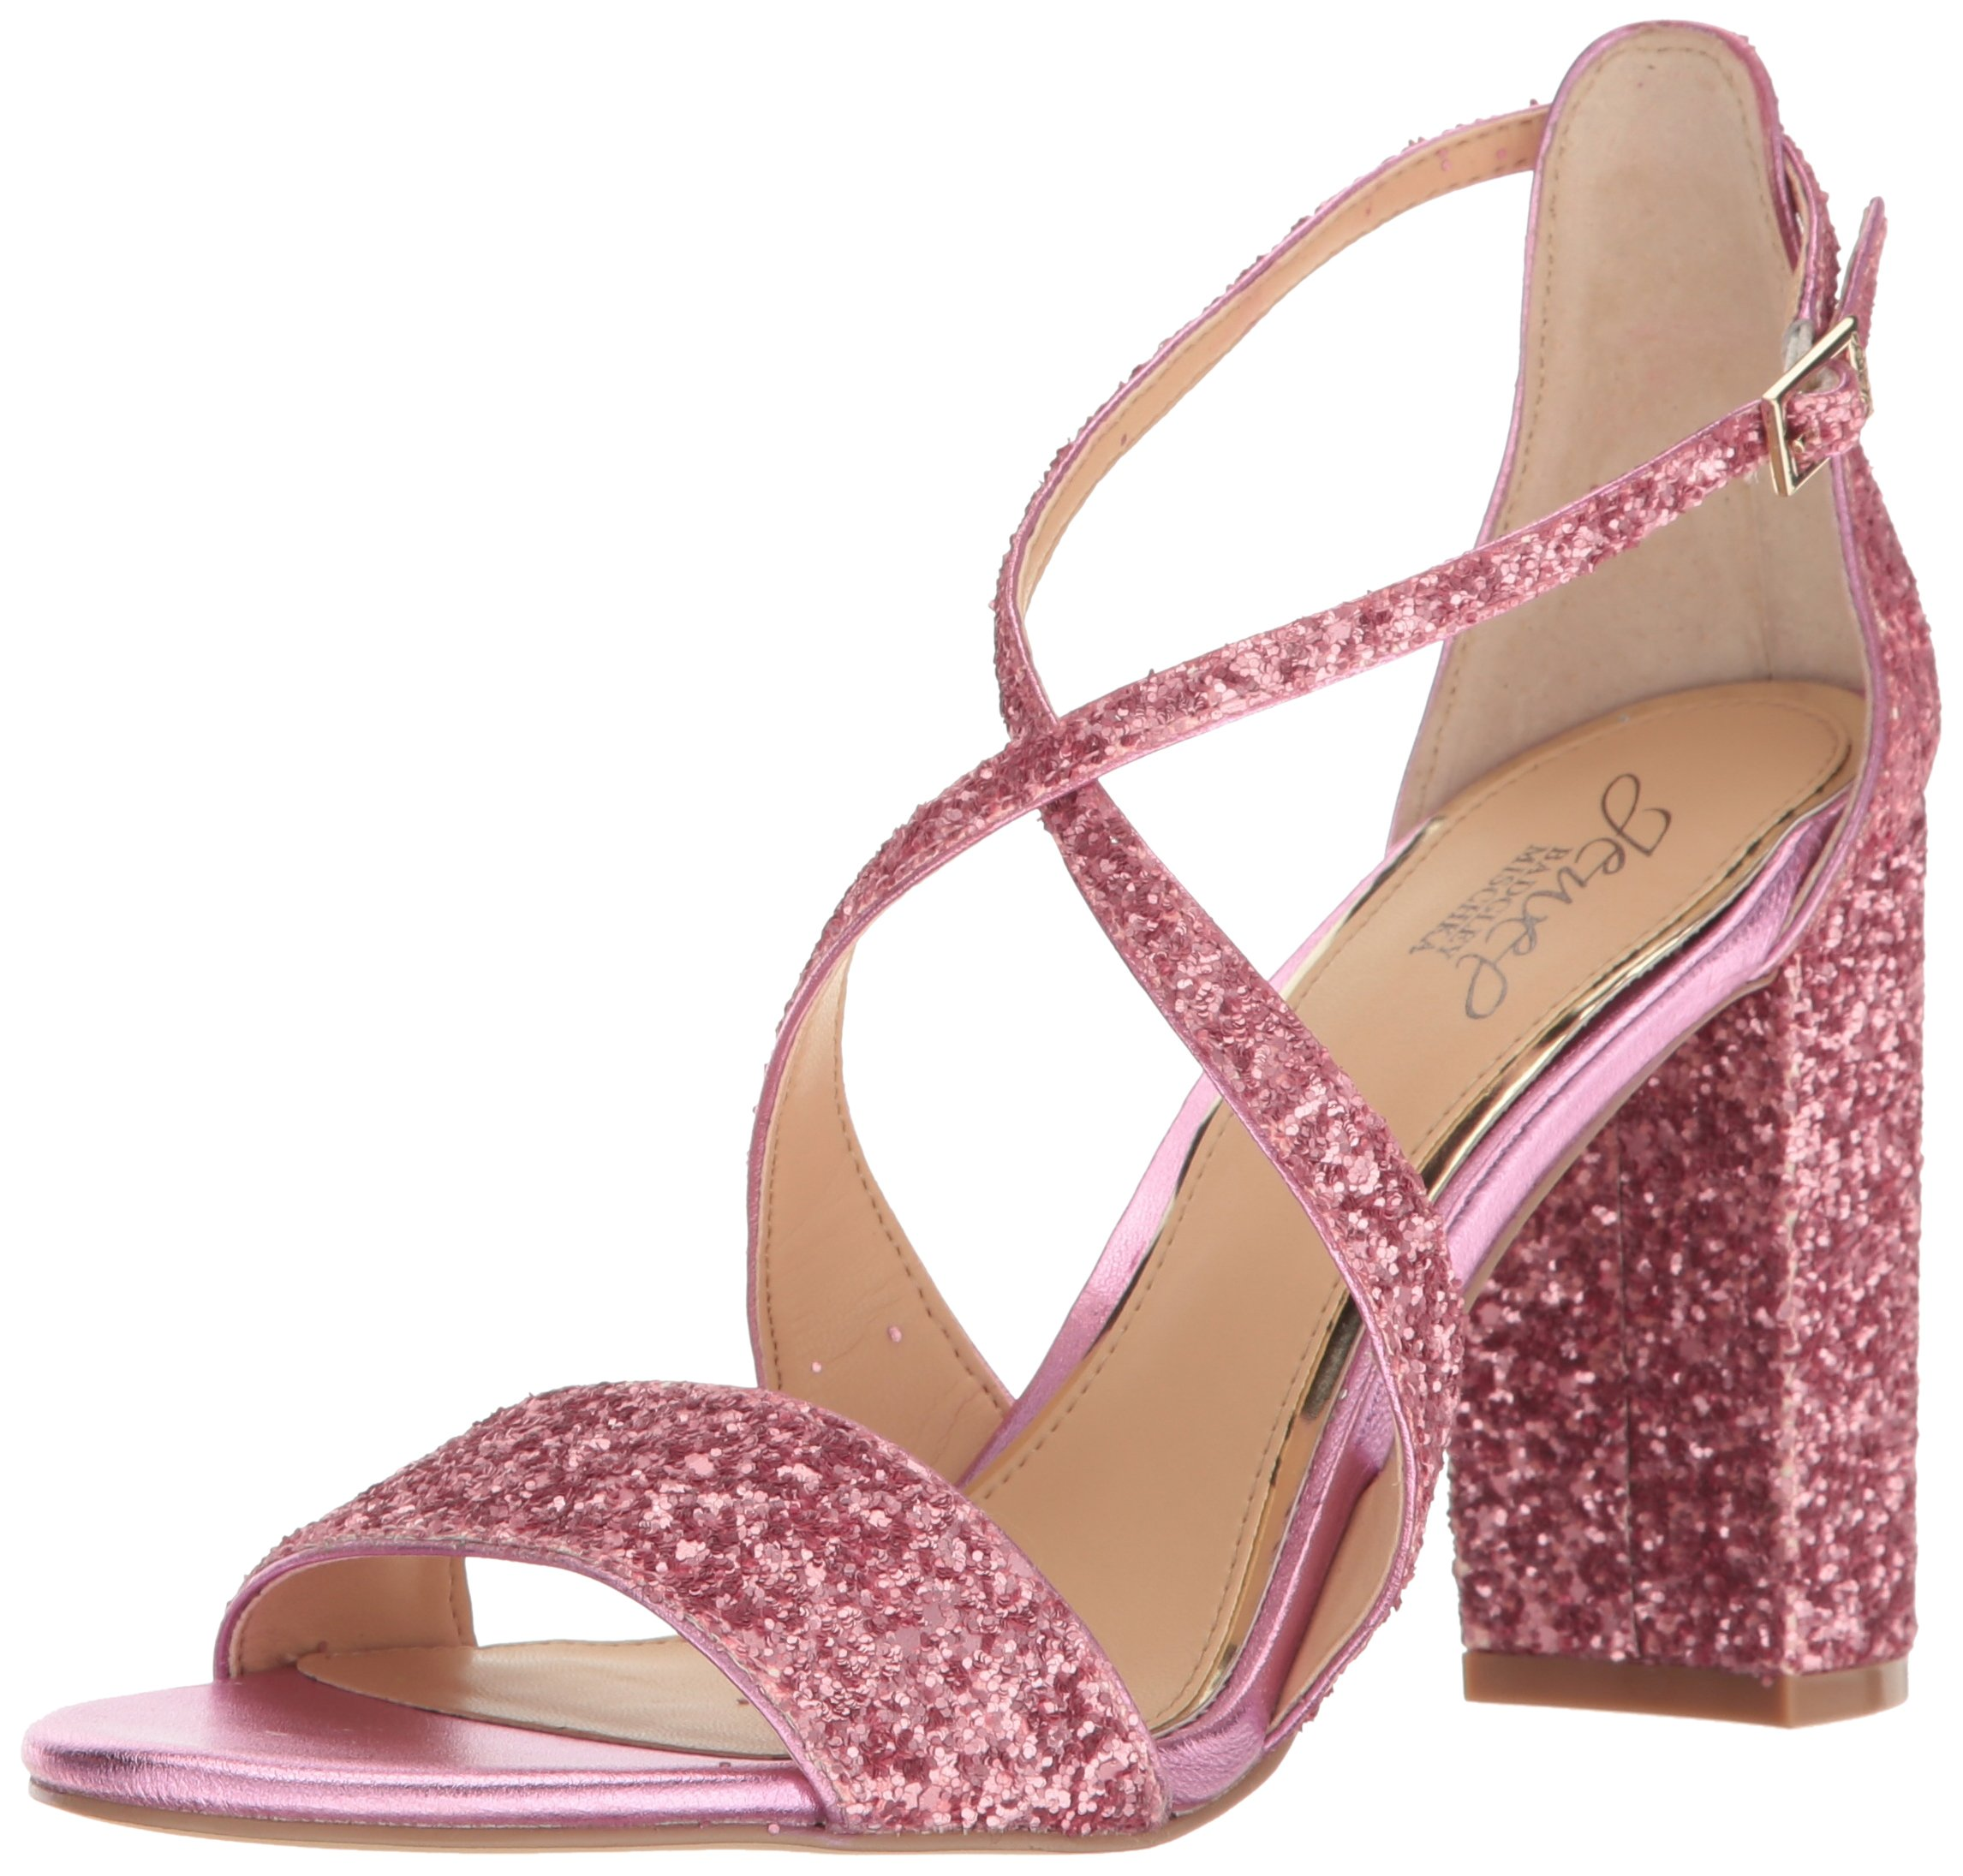 Jewel Badgley Mischka Women's Cook Dress Sandal, Hot Pink, 7.5 M US